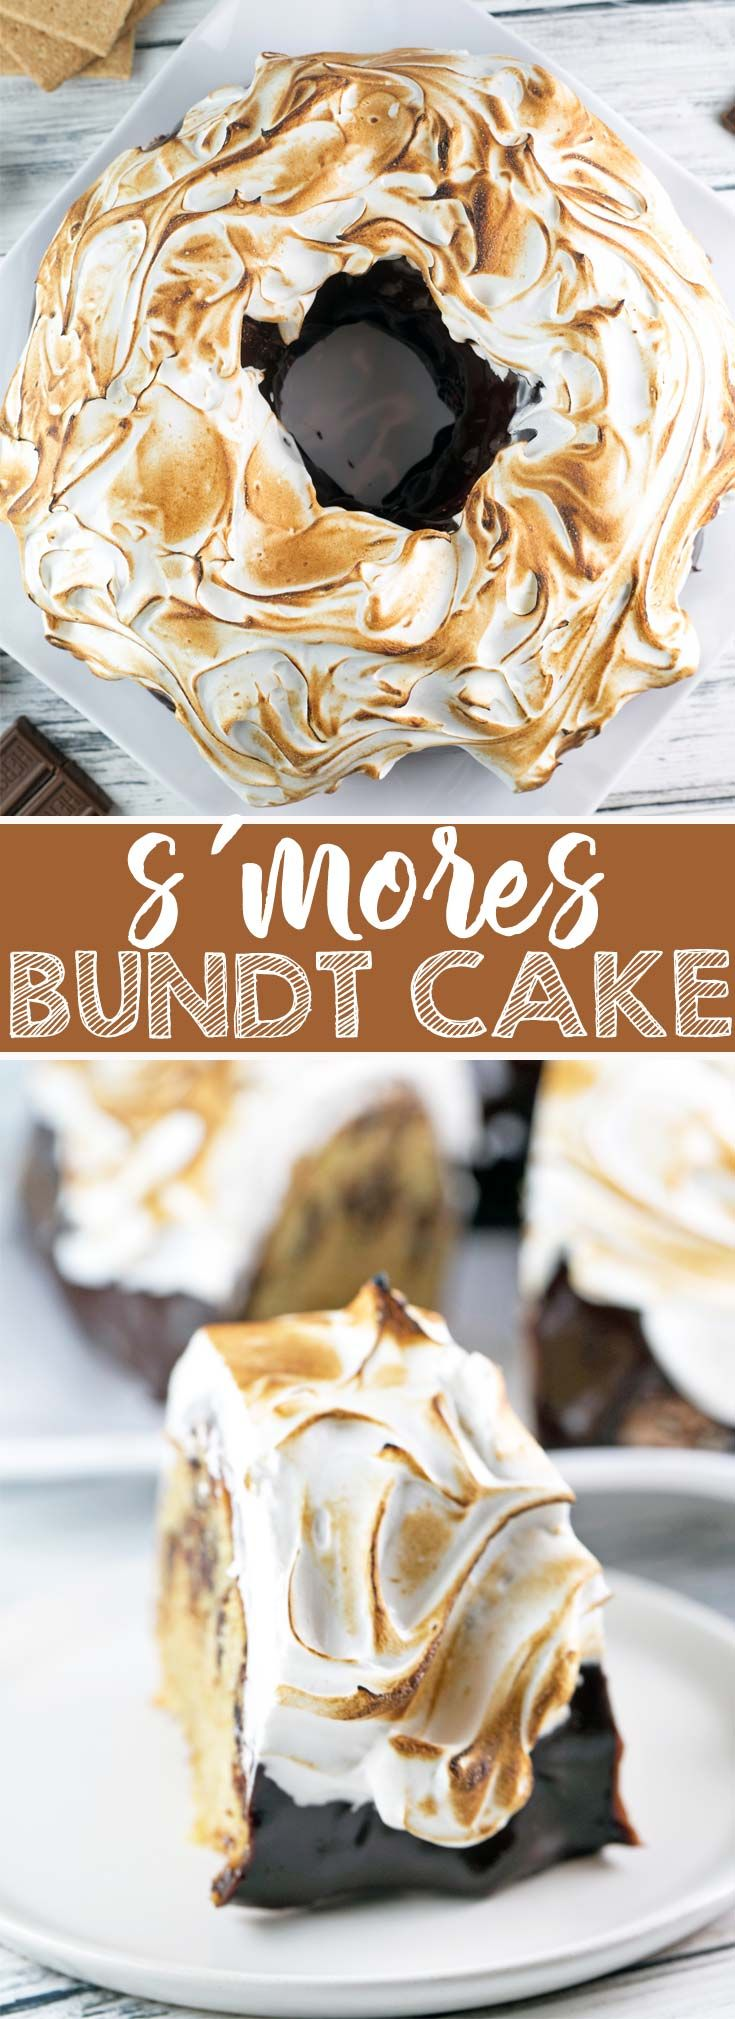 S'mores Bundt Cake: a graham cracker cake with chocolate ganache and homemade marshmallow fluff frosting toasted to a perfect brown.  It's just like your childhood favorite - but even better! {Bunsen Burner Bakery} via @bnsnbrnrbakery